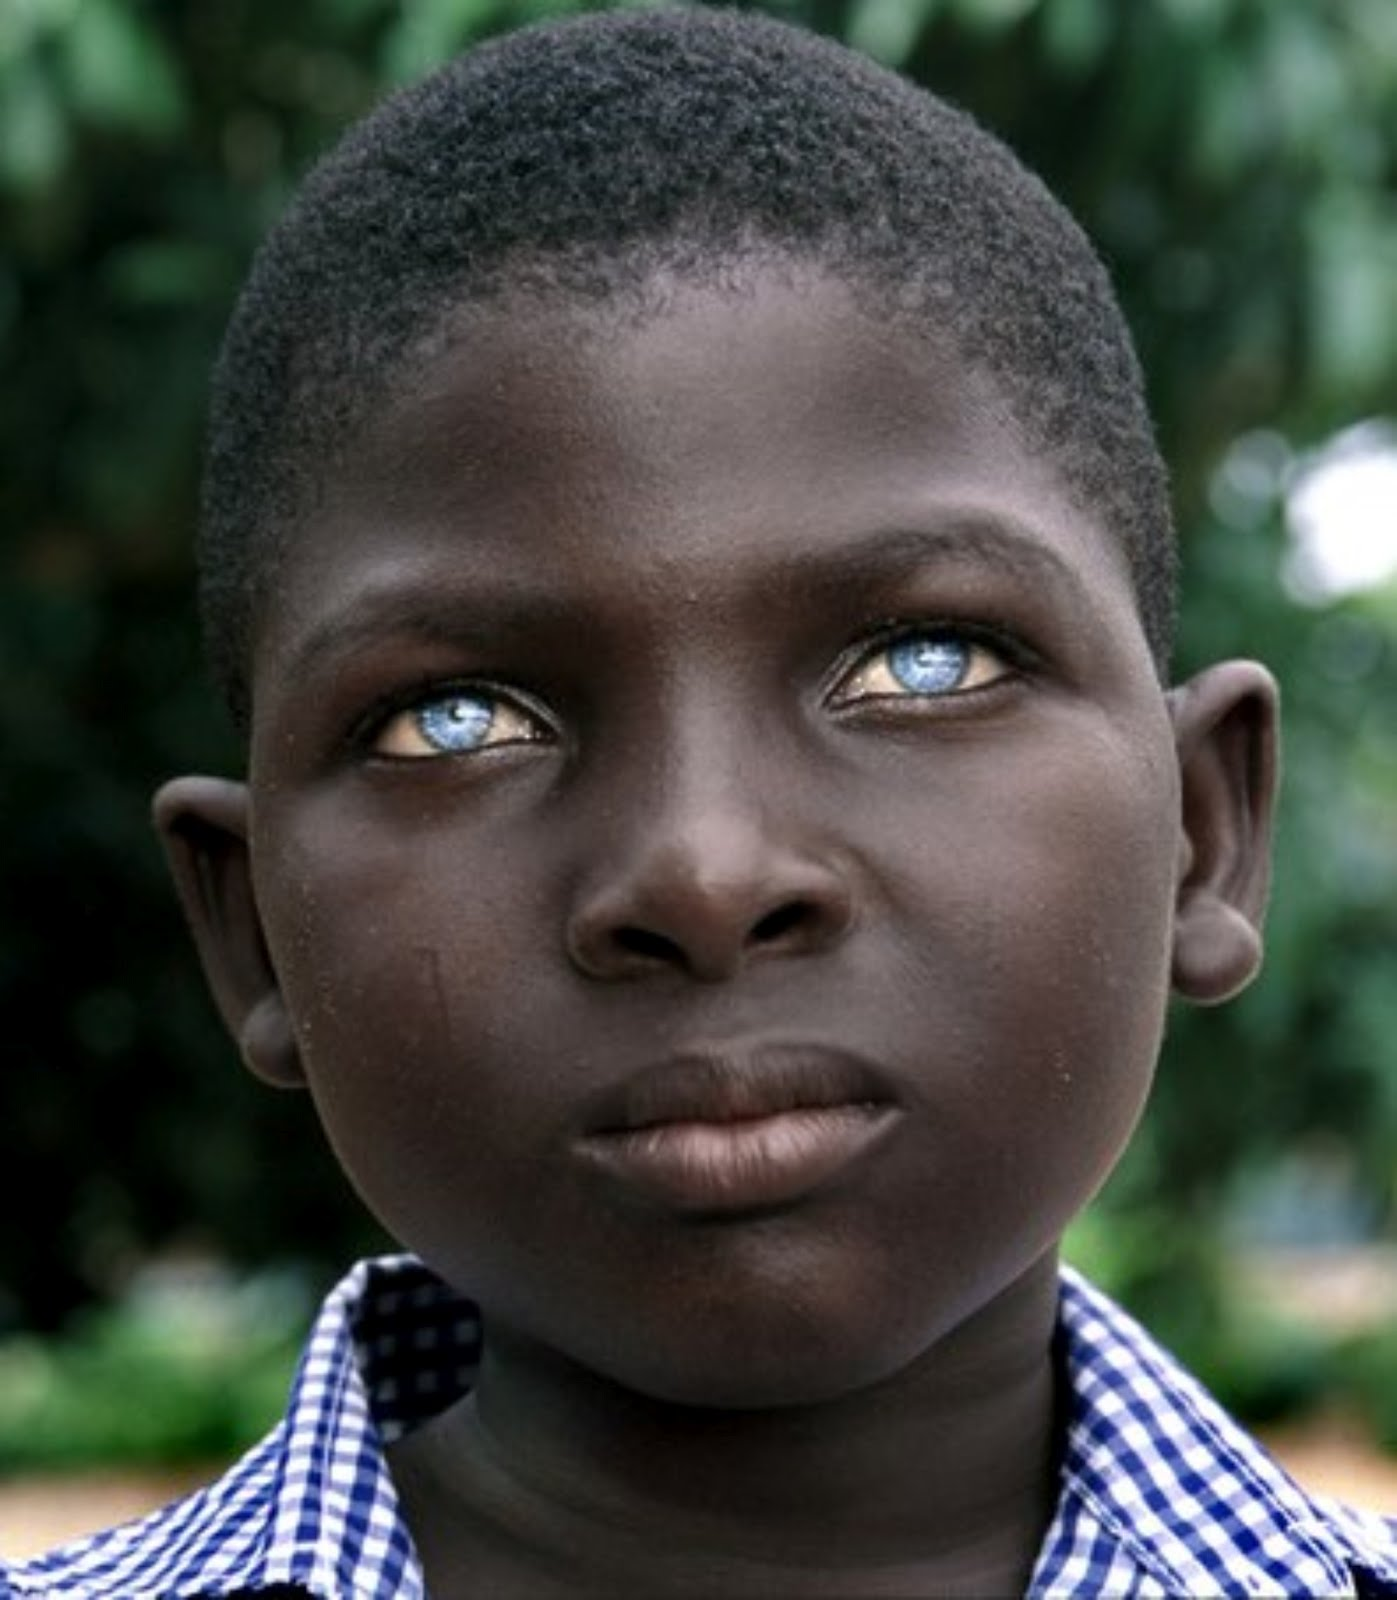 african boy with blue eyes this photo is perhaps the